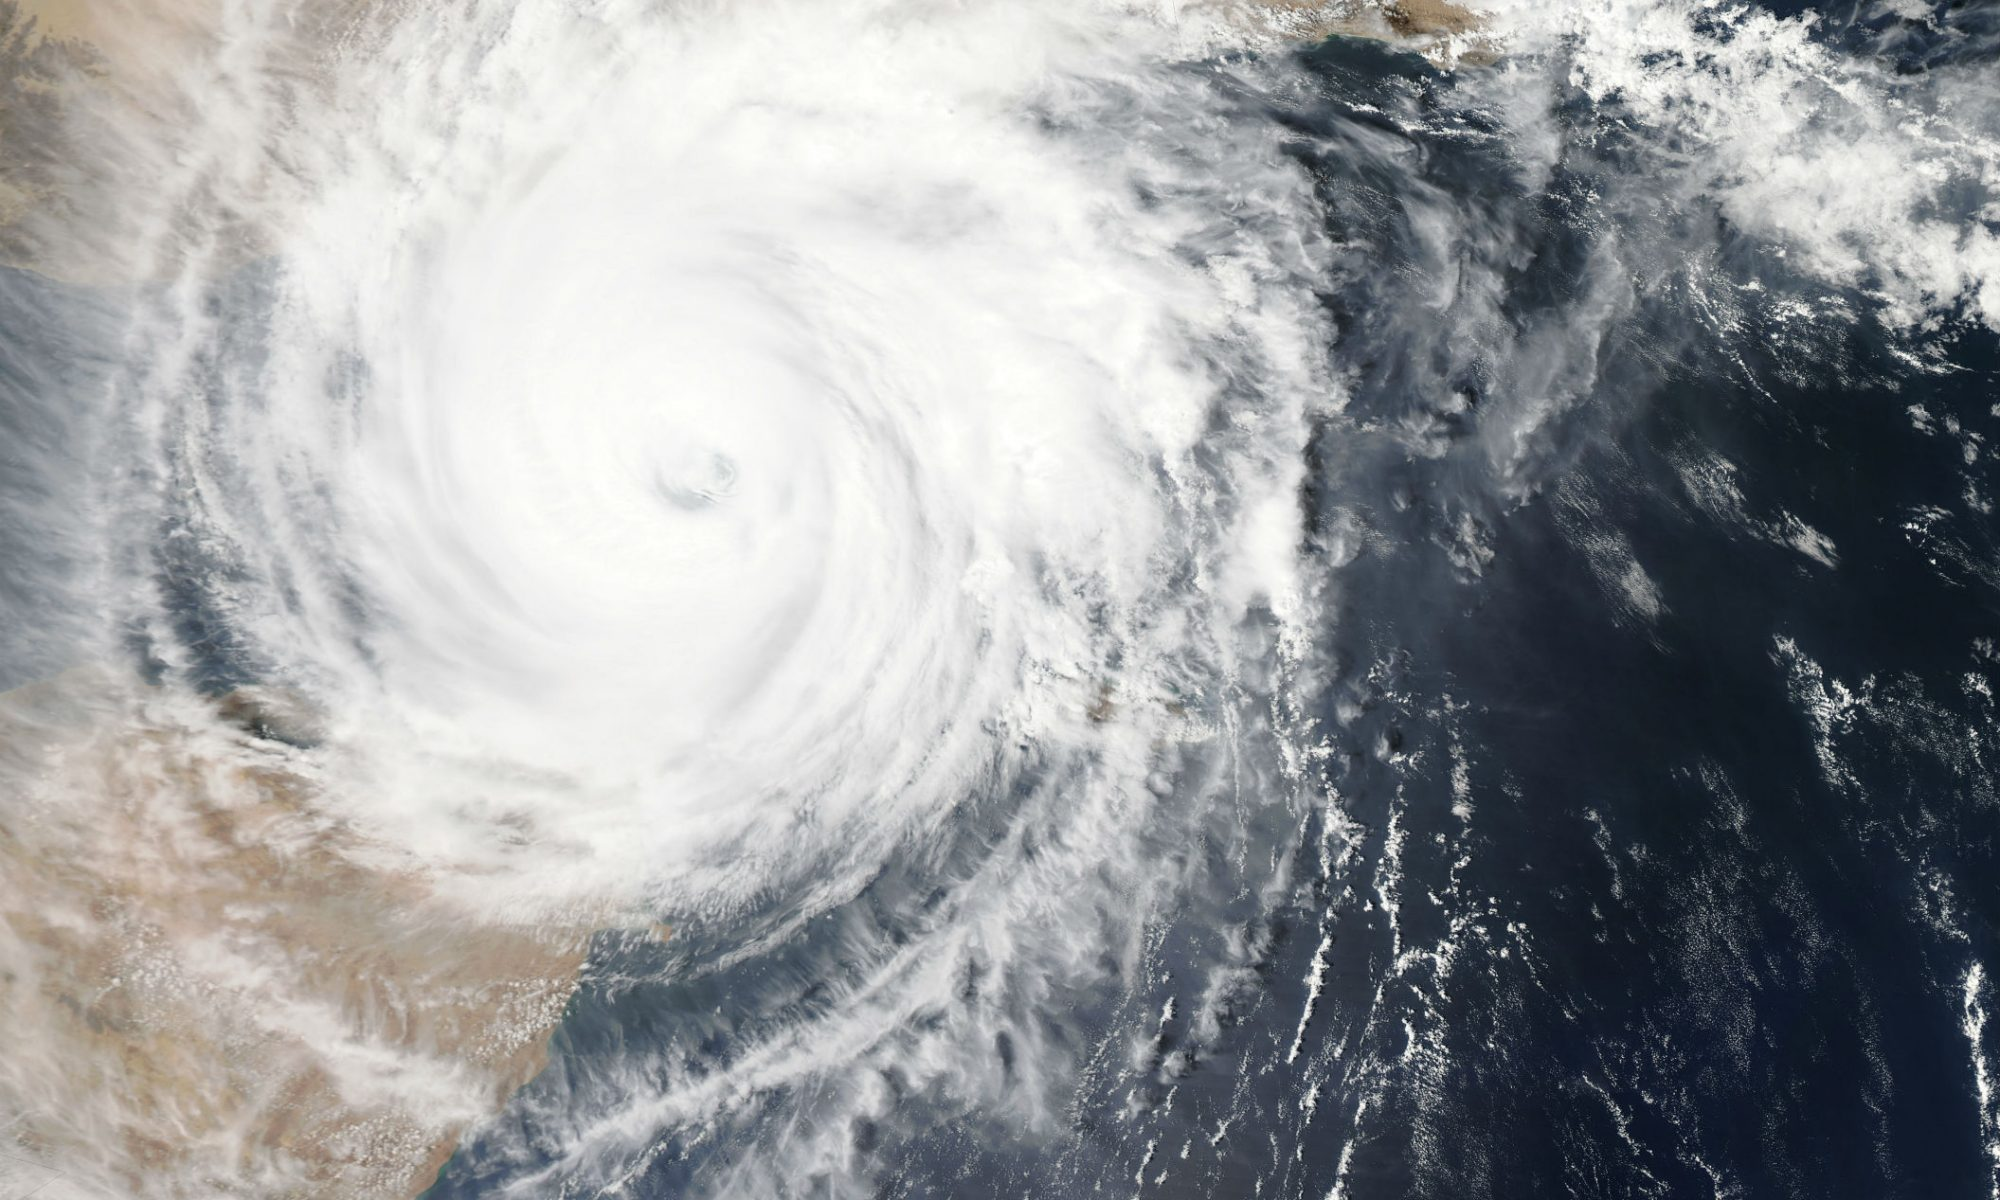 Cyclone. Photo by NASA on Unsplash